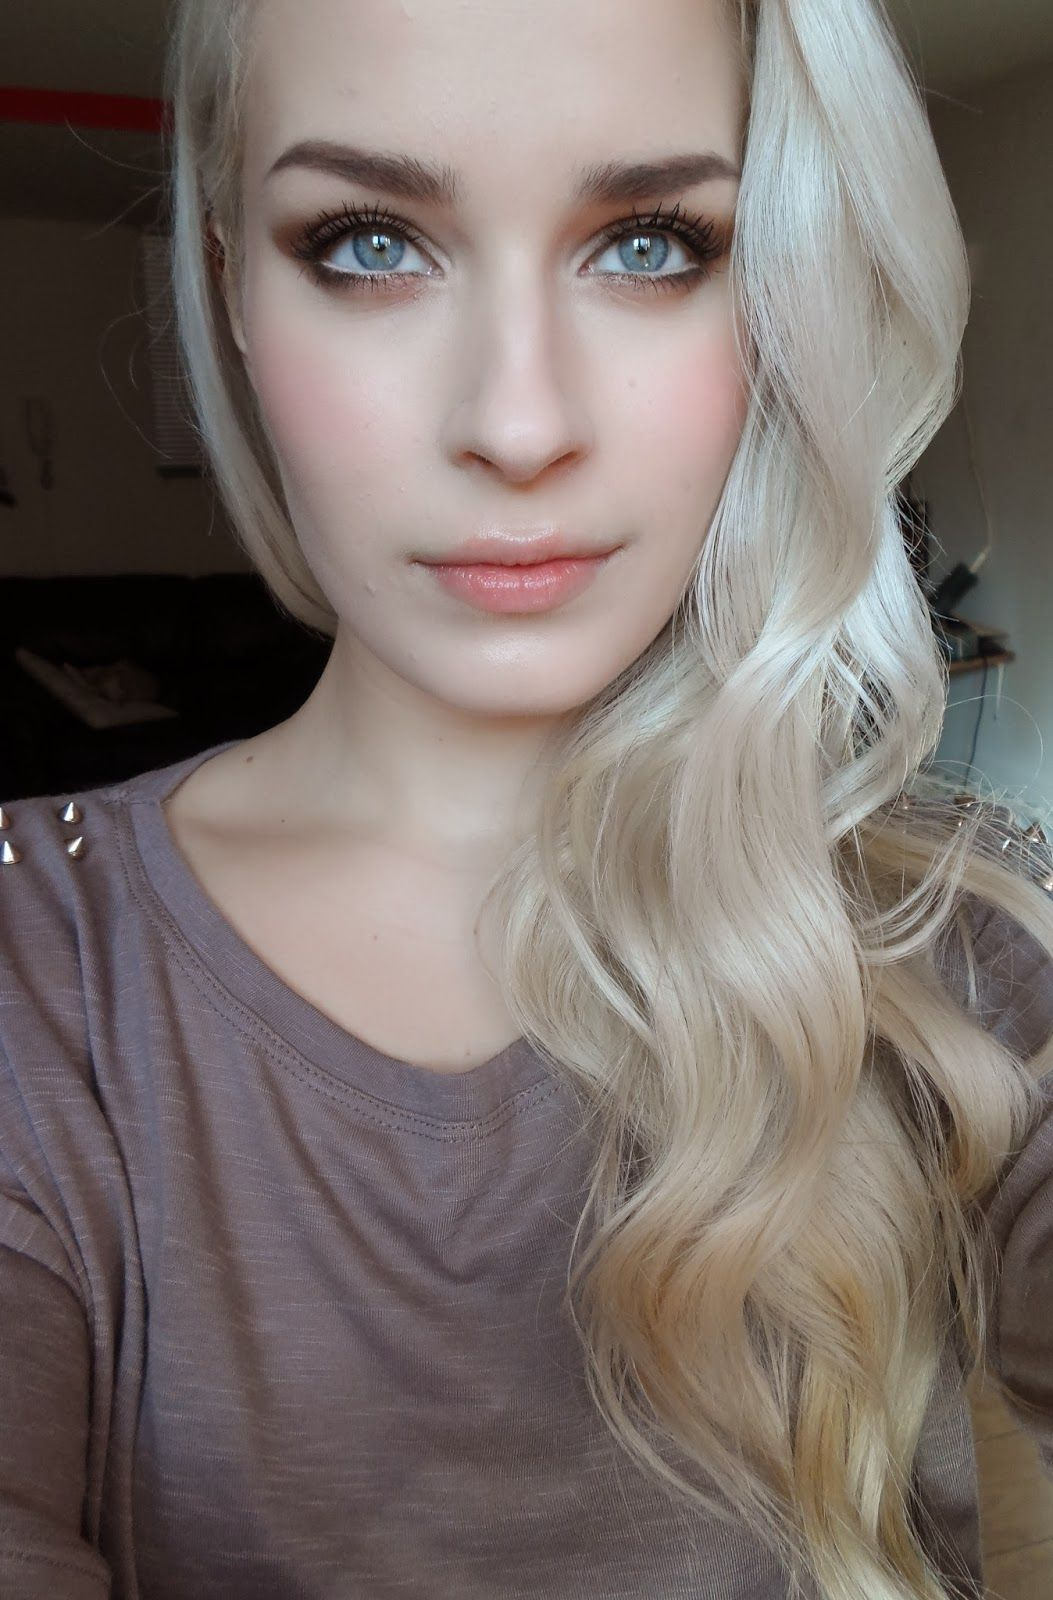 Beautiful Hair Looks Amazing With Her Porcelain Skin